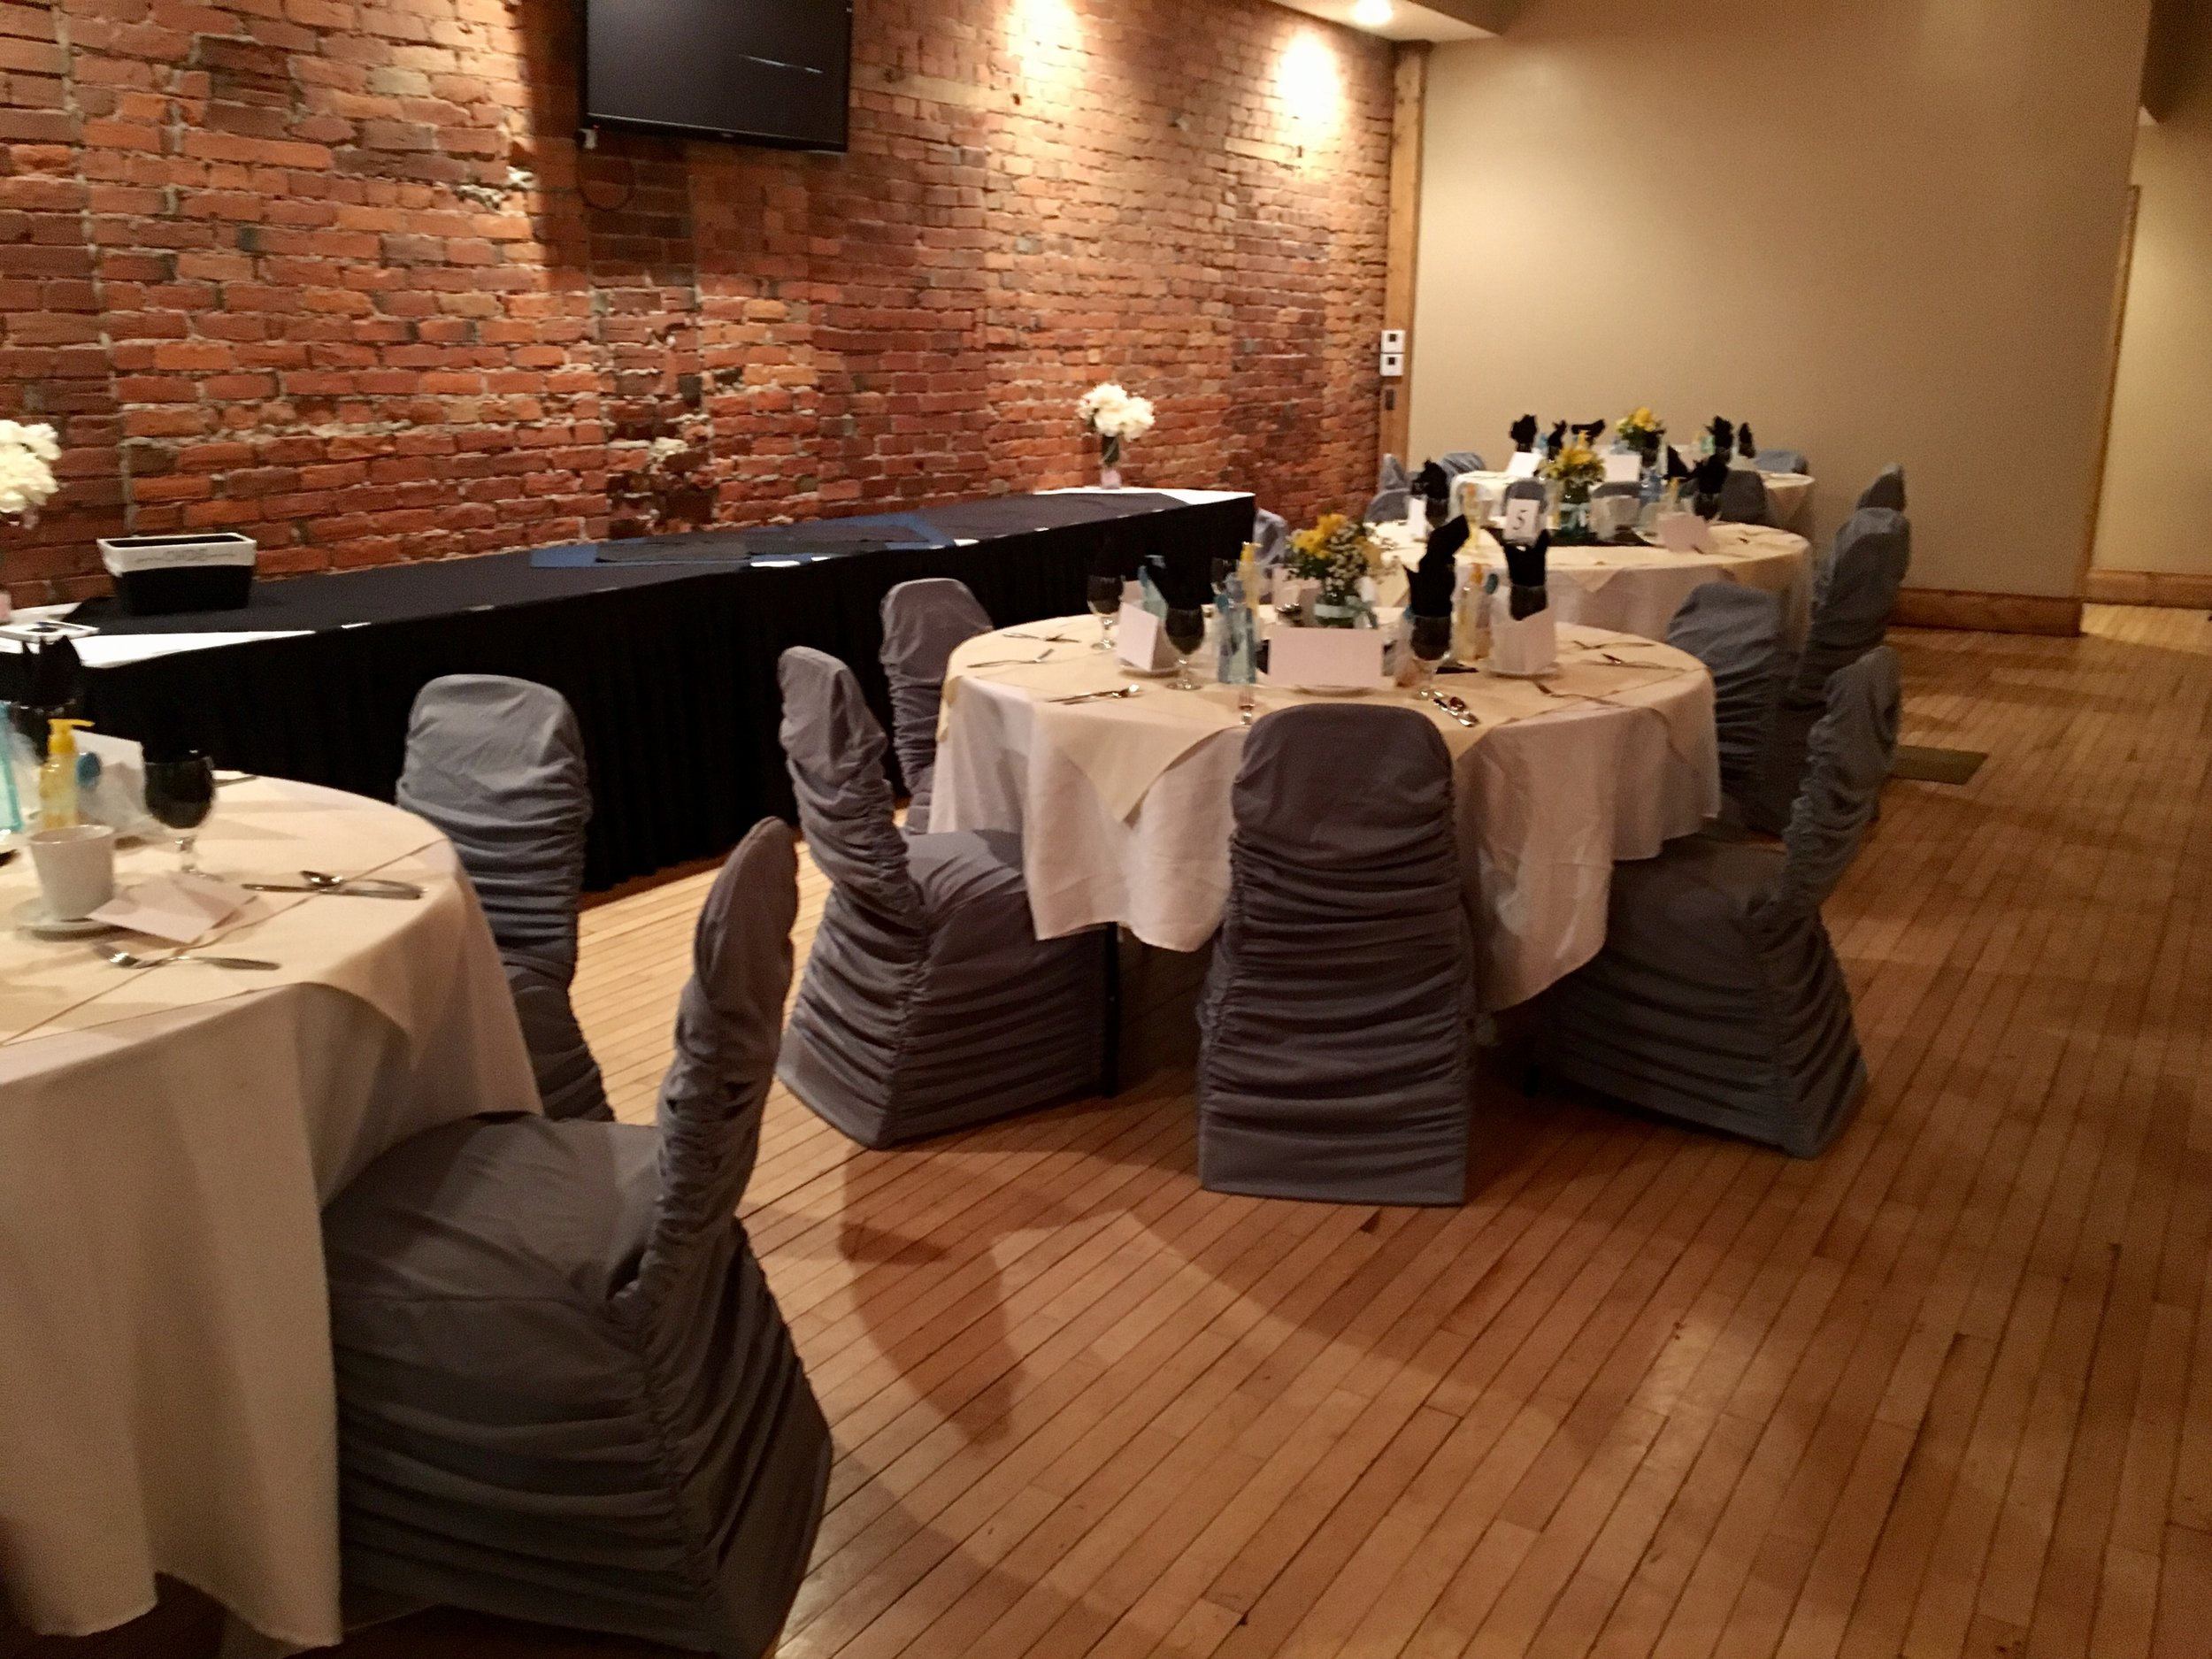 banquet room setup with chair covers.jpg